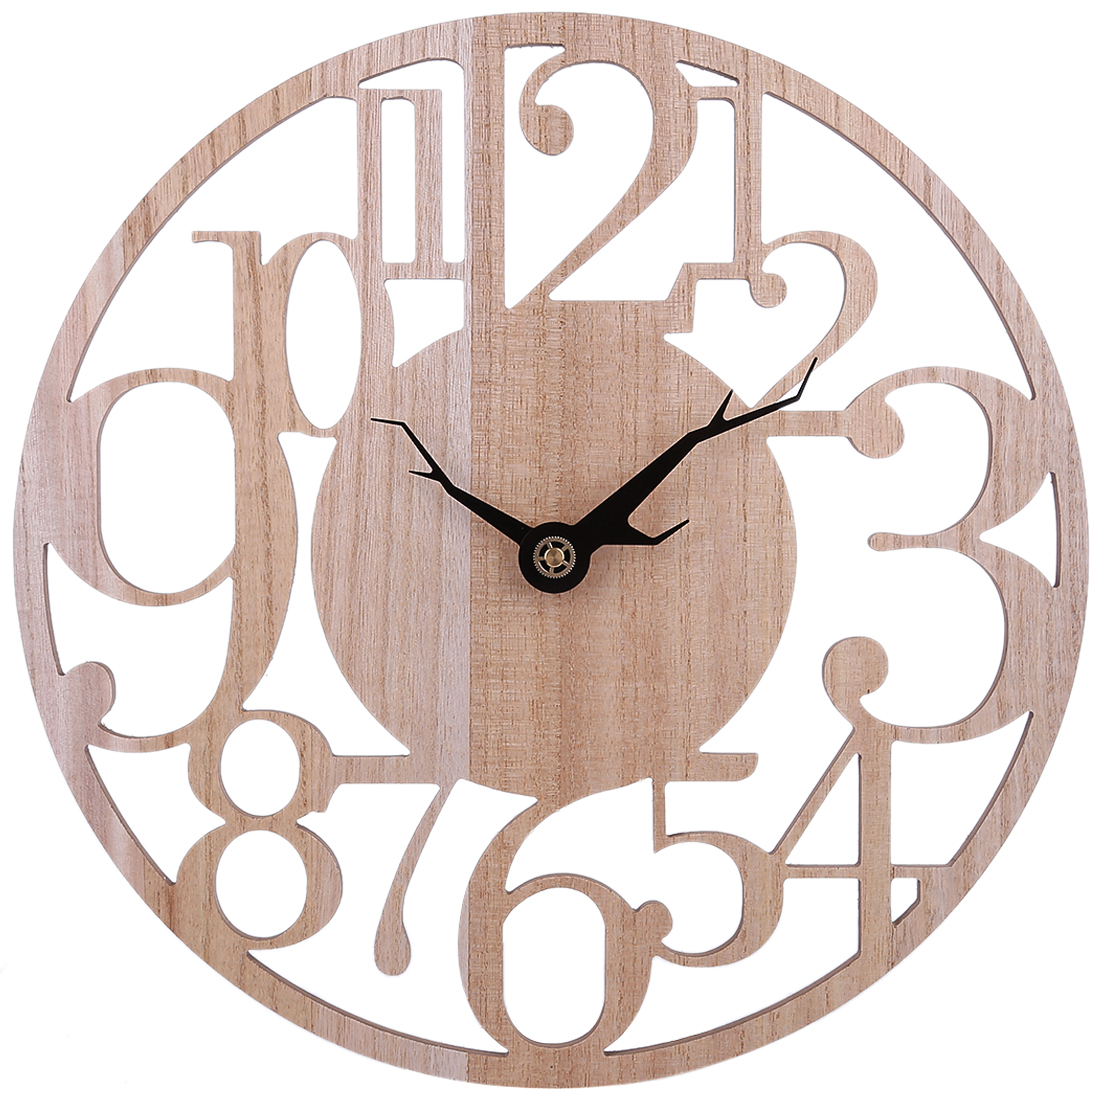 Clocks 34/40cm Brief Hollow Arabic Numerals Mute Wall Clock Battery Operated Hanging Clock For Living Room Decor Light Wood Color Big Clearance Sale Home Decor